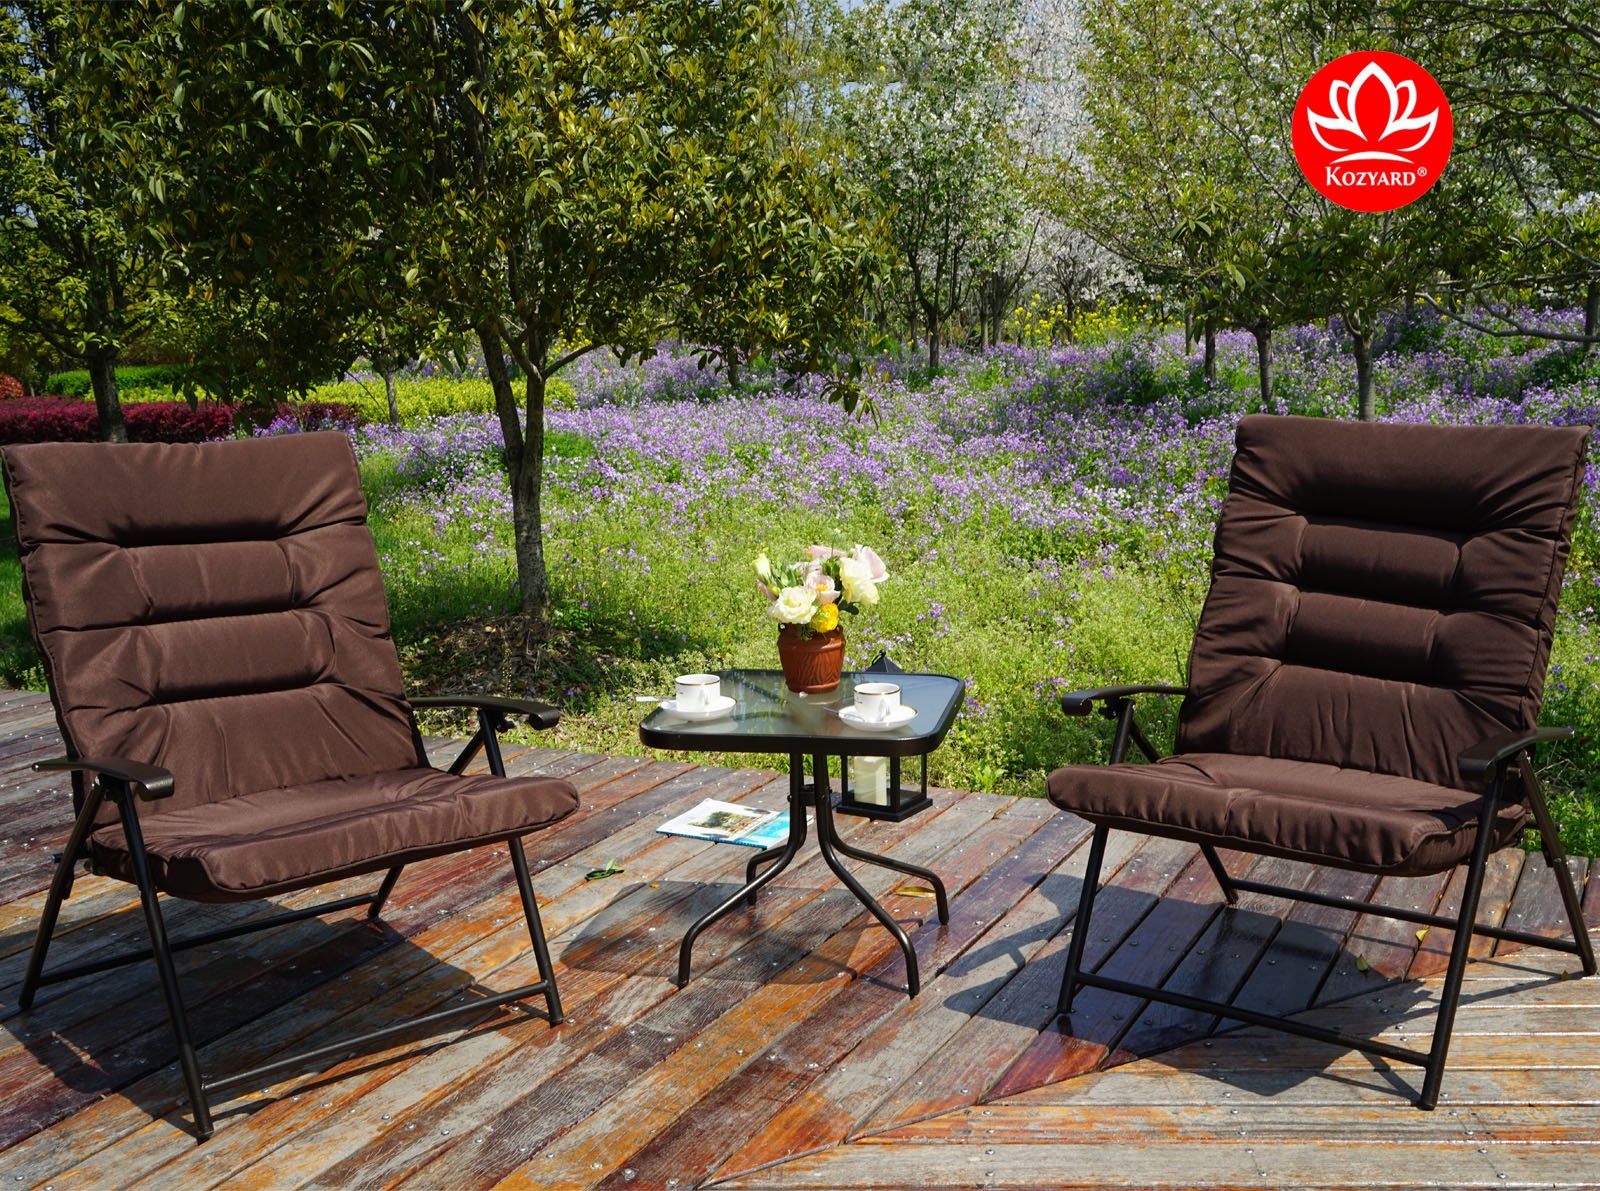 Kozyard Elsa 3 Pieces Outdoor Patio Furniture Padded Folding Sets for Yard, Patio, Deck or Backyard by Kozyard (Image #4)